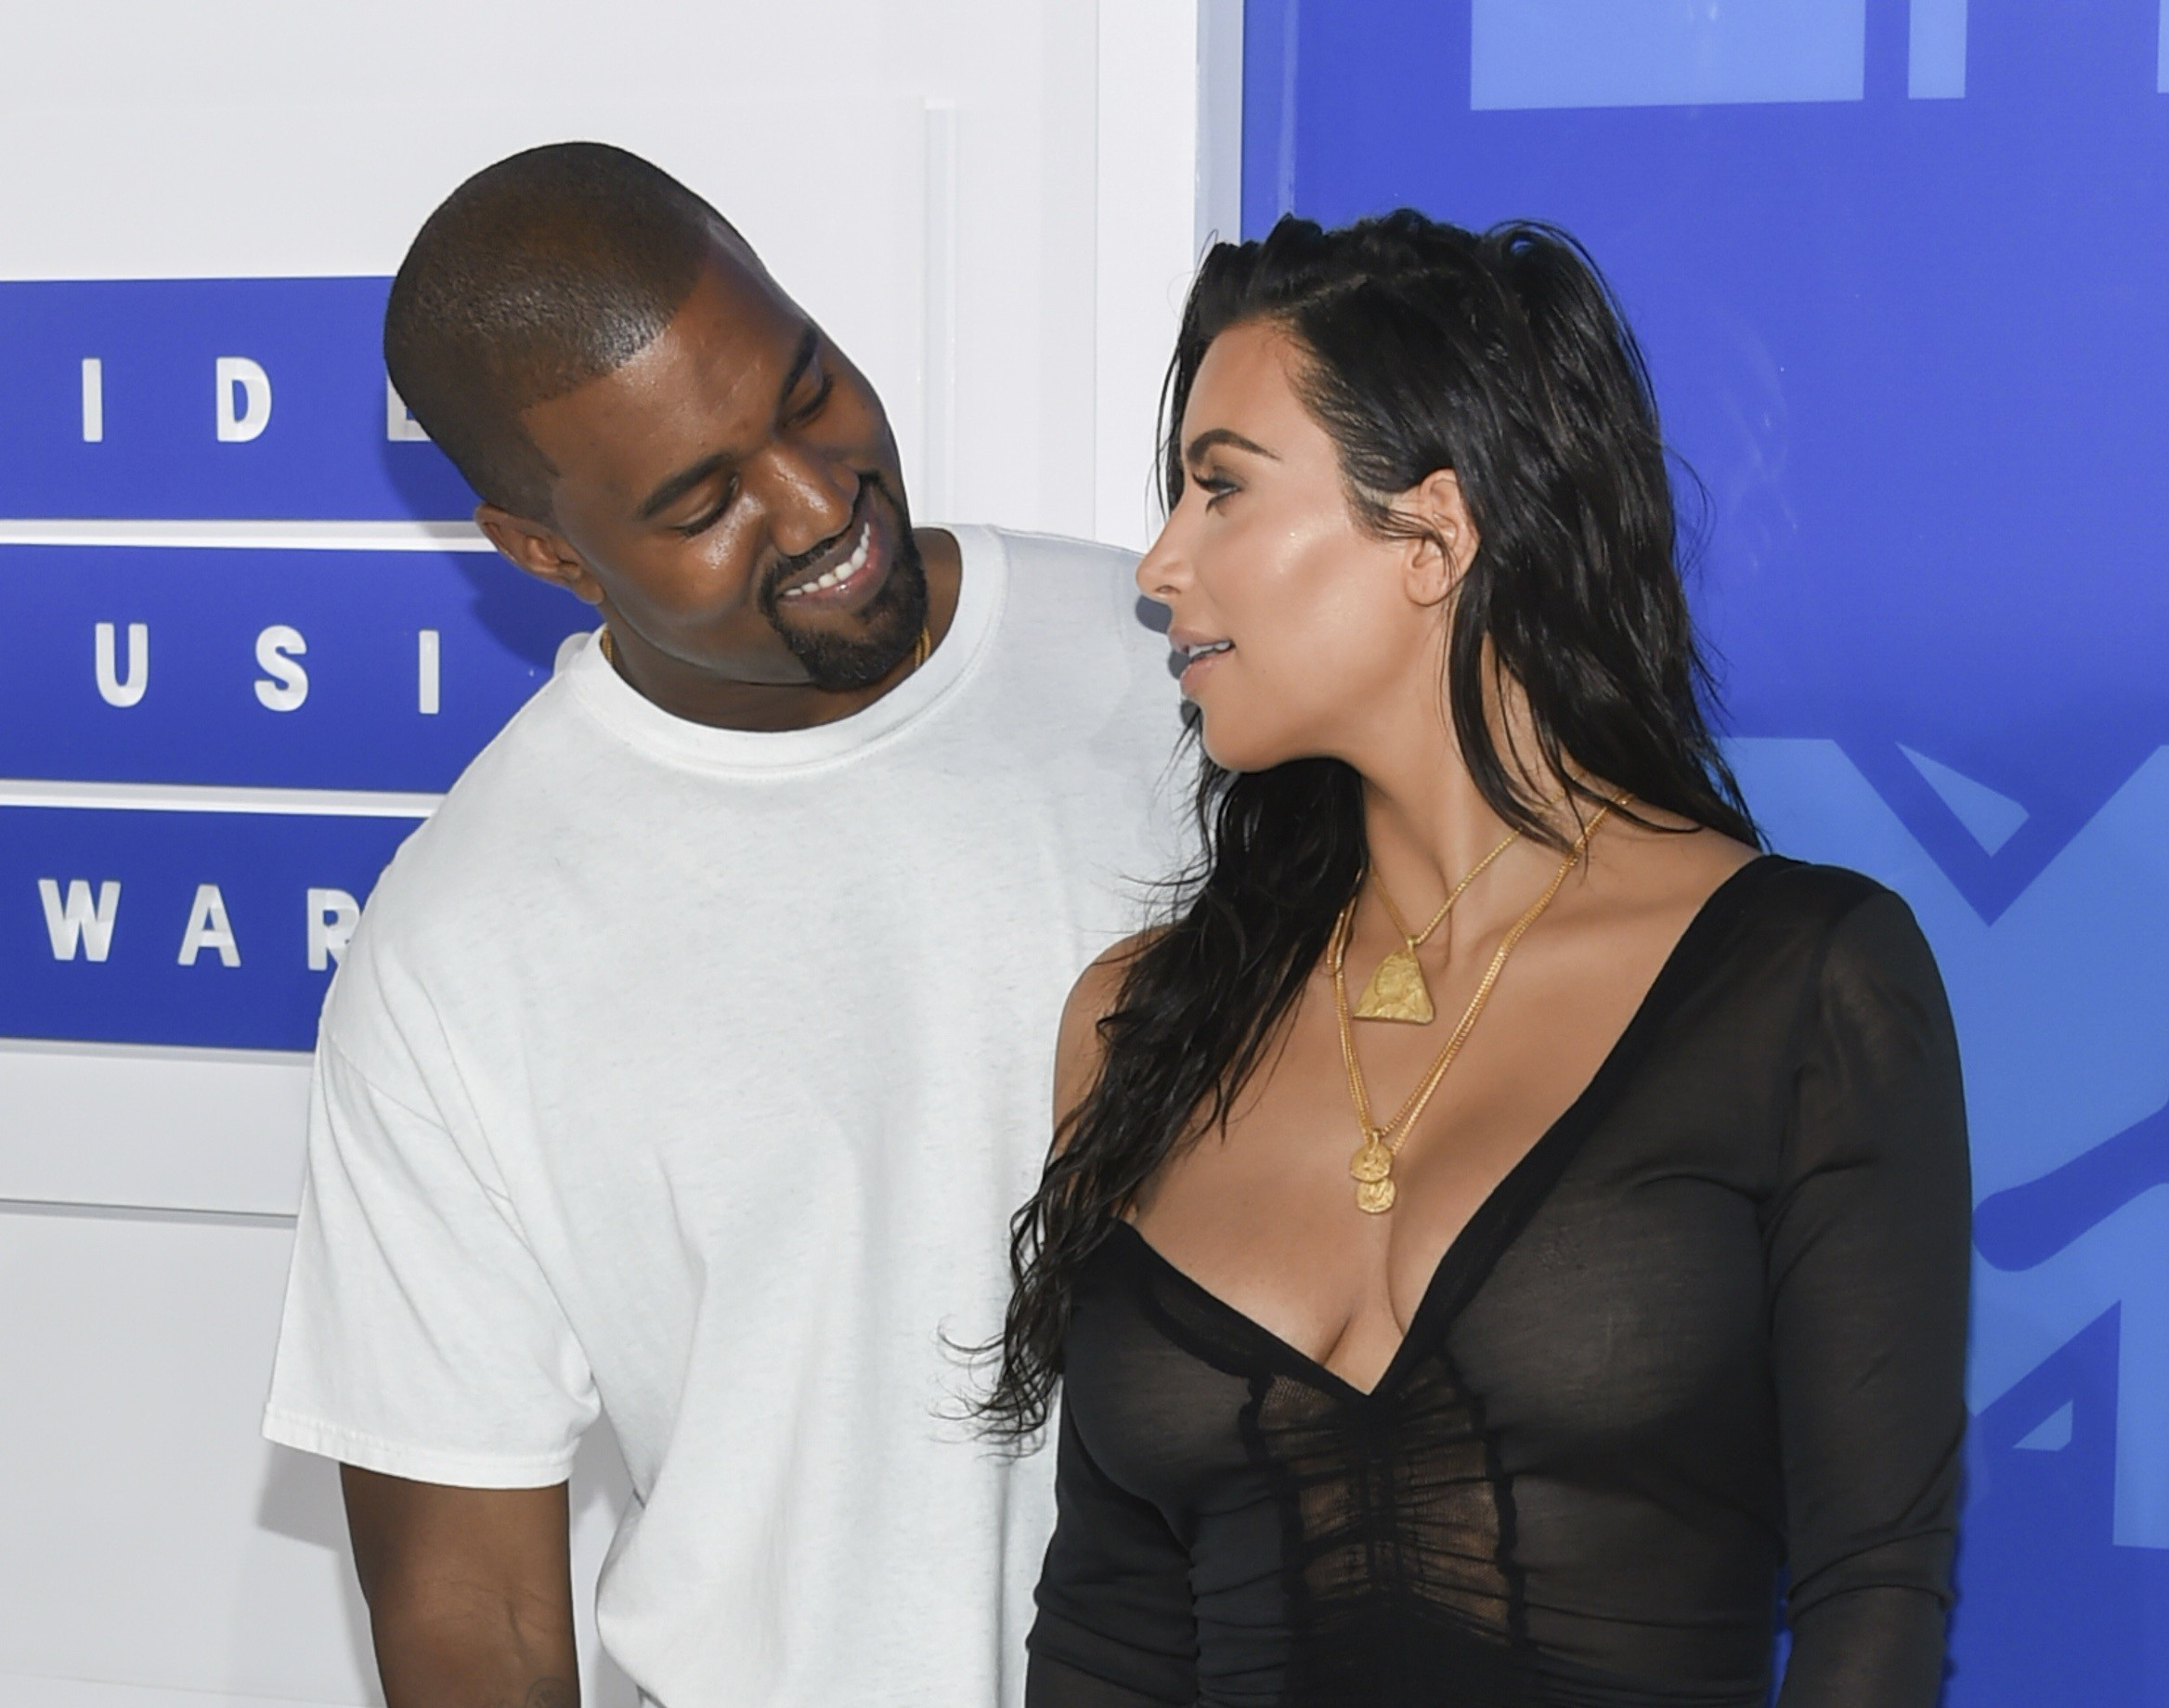 Casamento de Kanye West e Kim Kardashian estaria chegando ao fim, segundo revistas americanas (Foto: Associated Press)